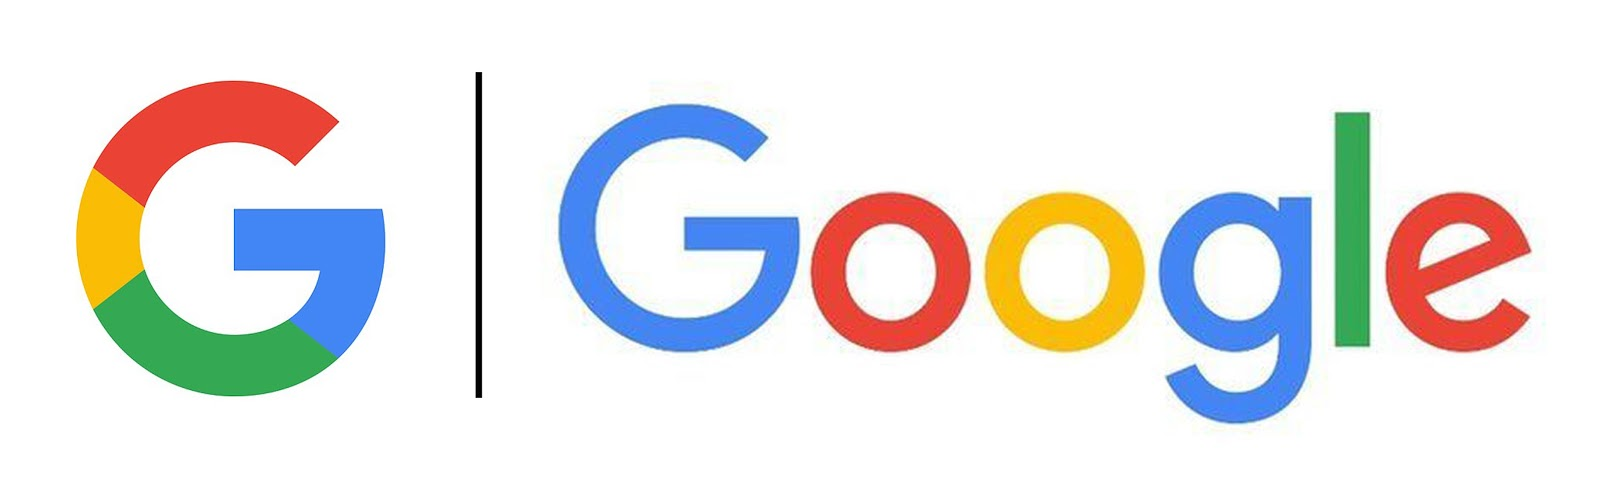 Google Launches New Logo & Branding Across All Services 1